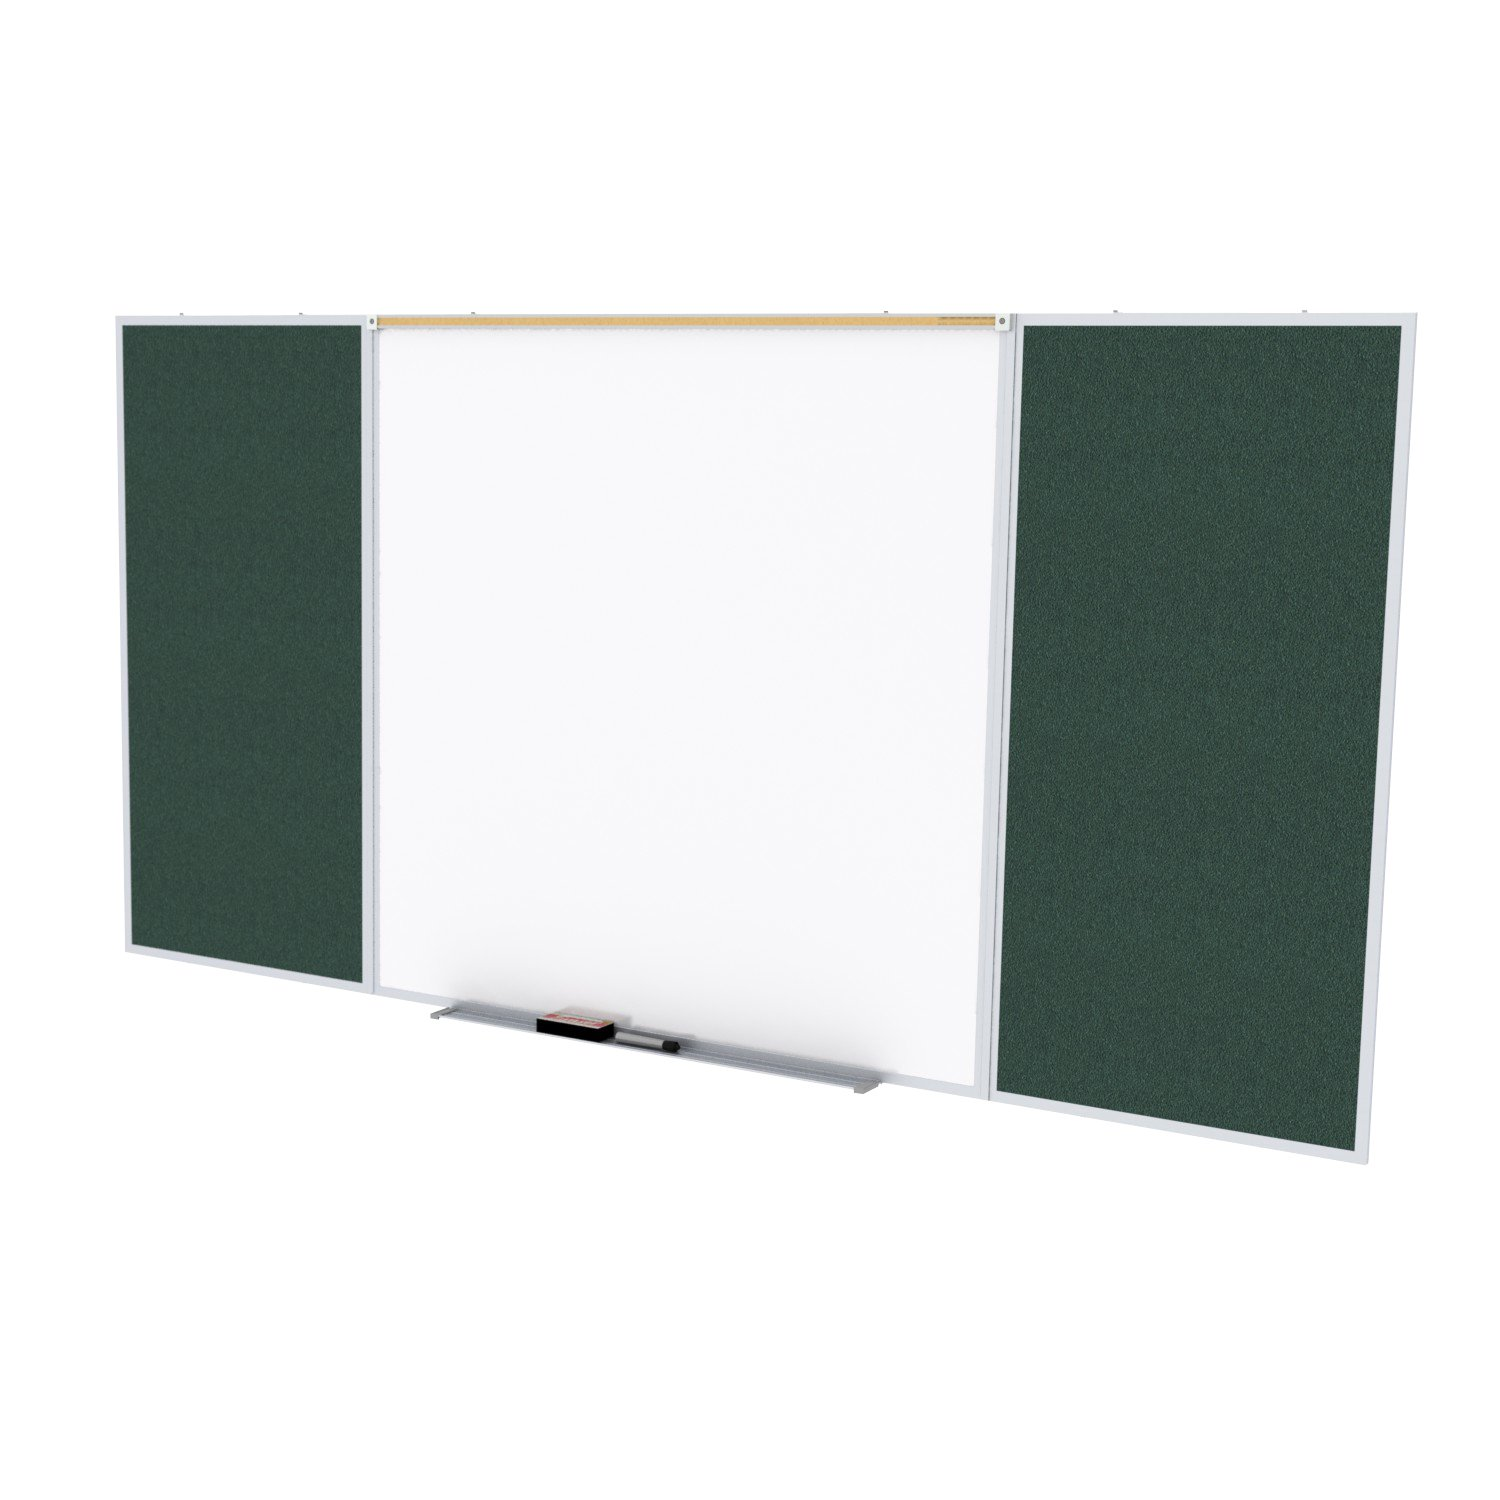 Ghent Style D 4 x 12 Feet Combination Board, Porcelain Magnetic Whiteboard and Vinyl Fabric Bulletin Board, Ebony , Made in the USA